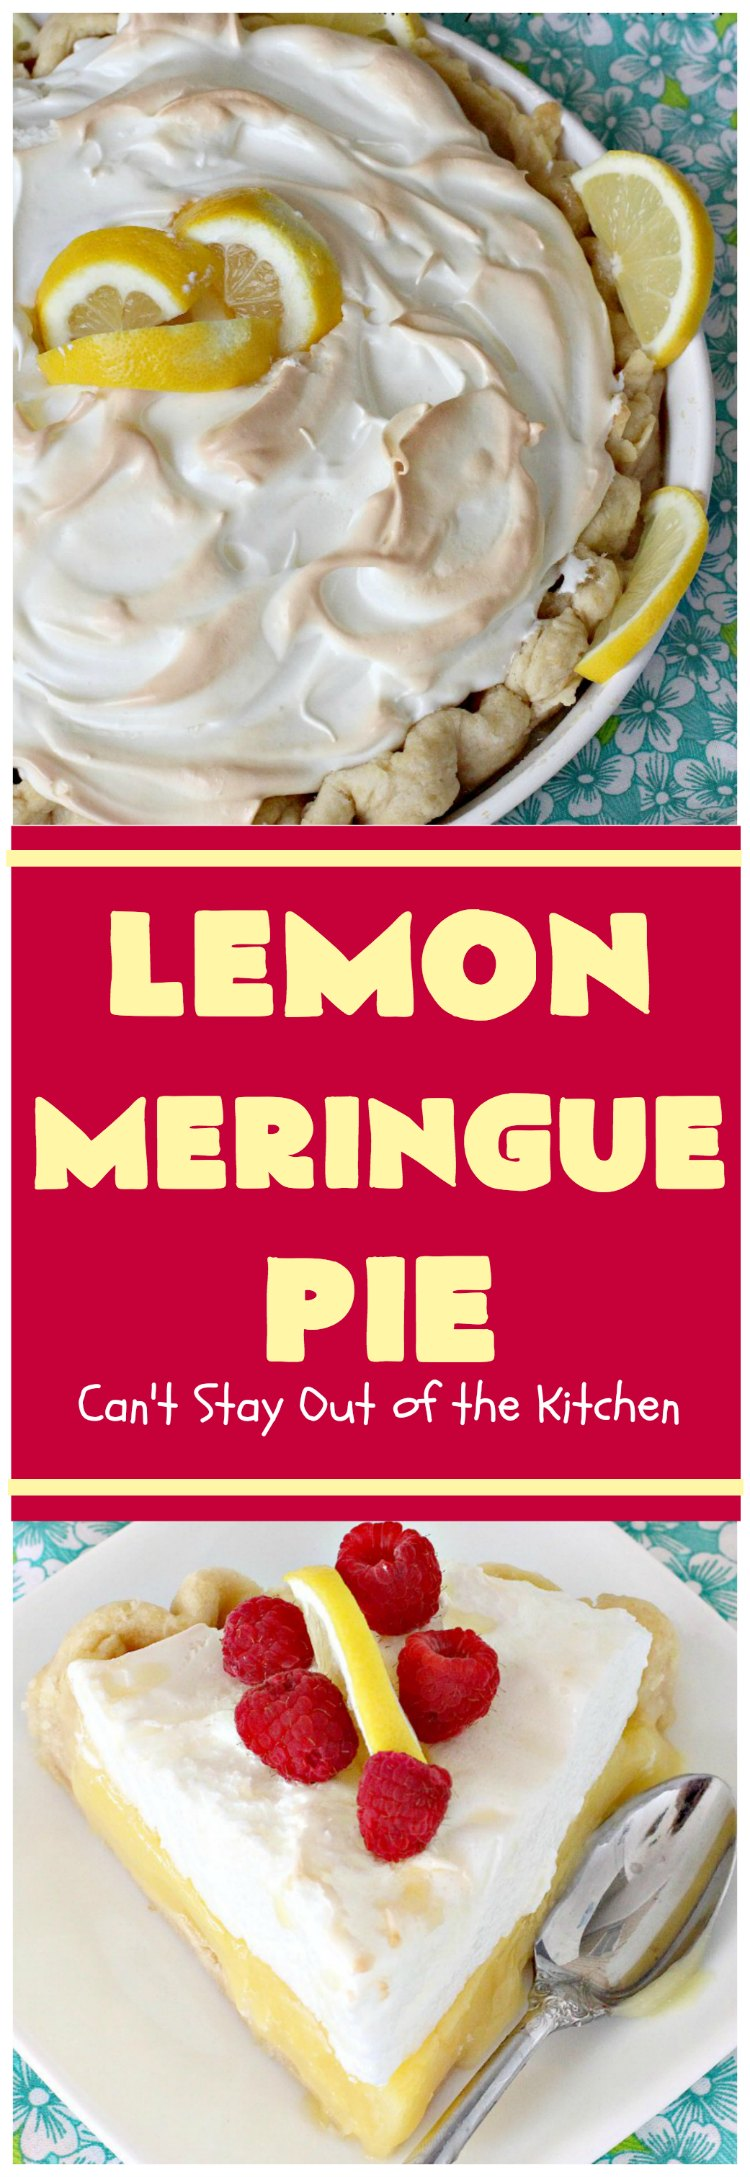 Lemon Meringue Pie   Can't Stay Out of the Kitchen